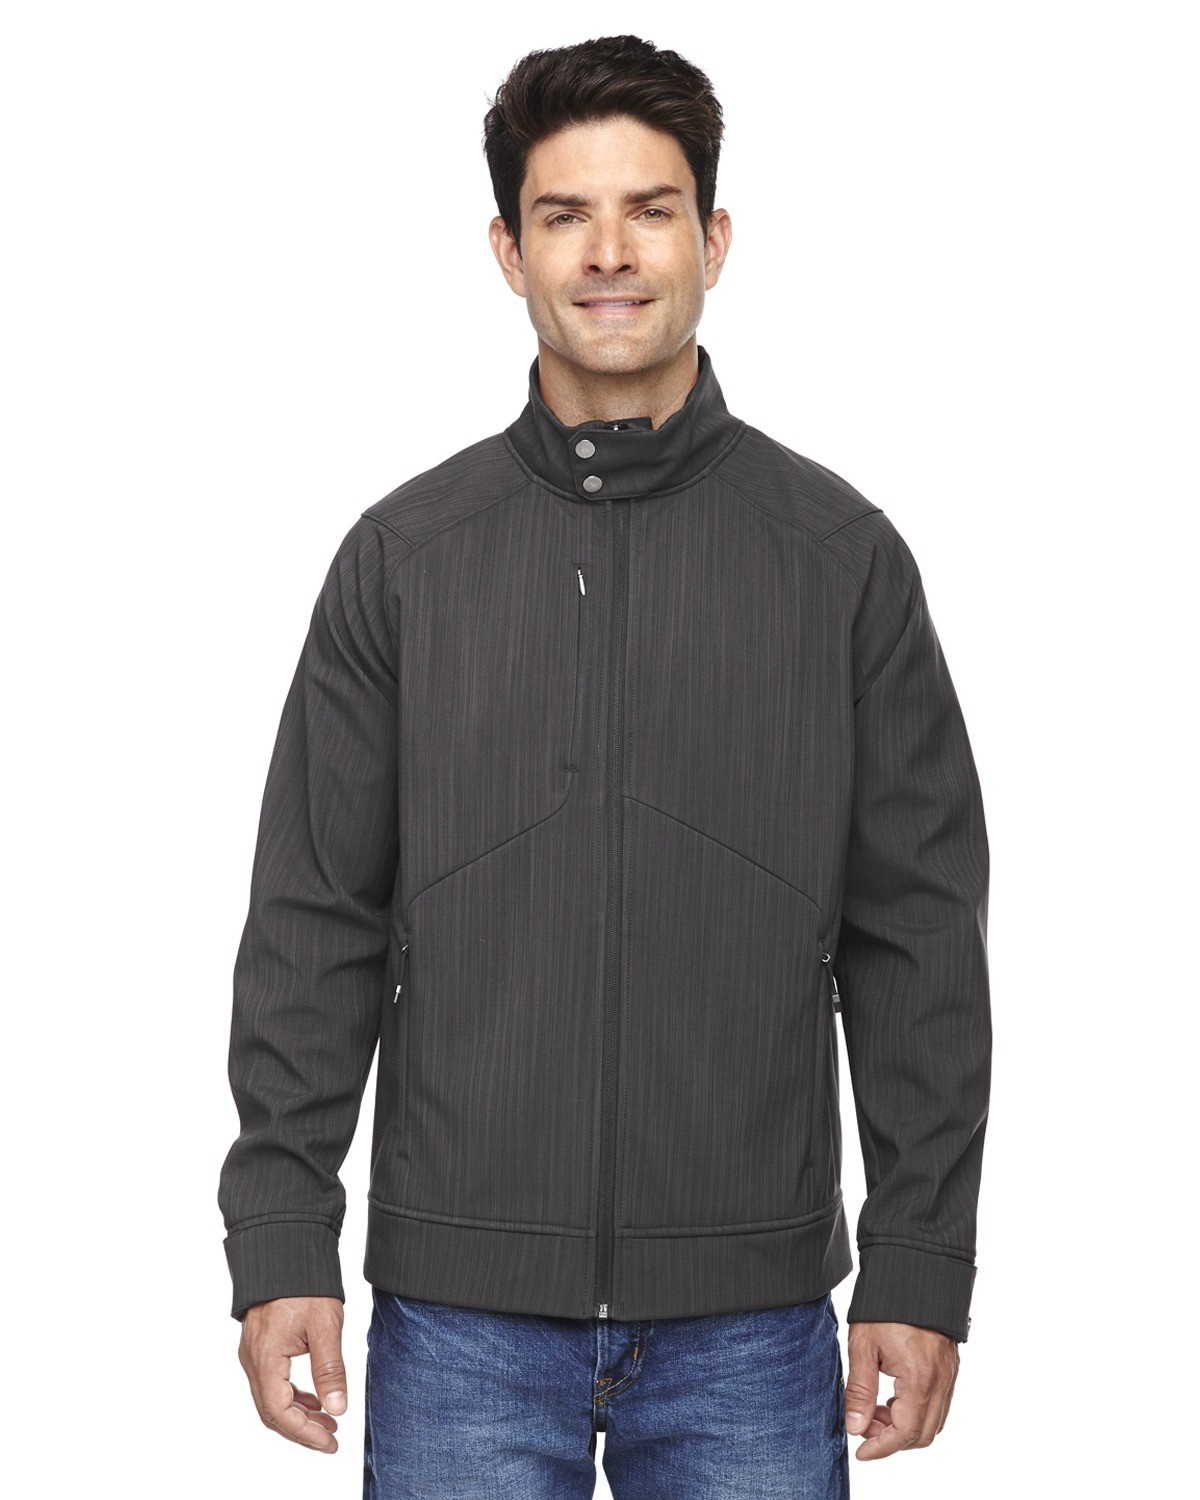 Men's Skyscape Three-Layer Textured Two-Tone Soft Shell Jacket